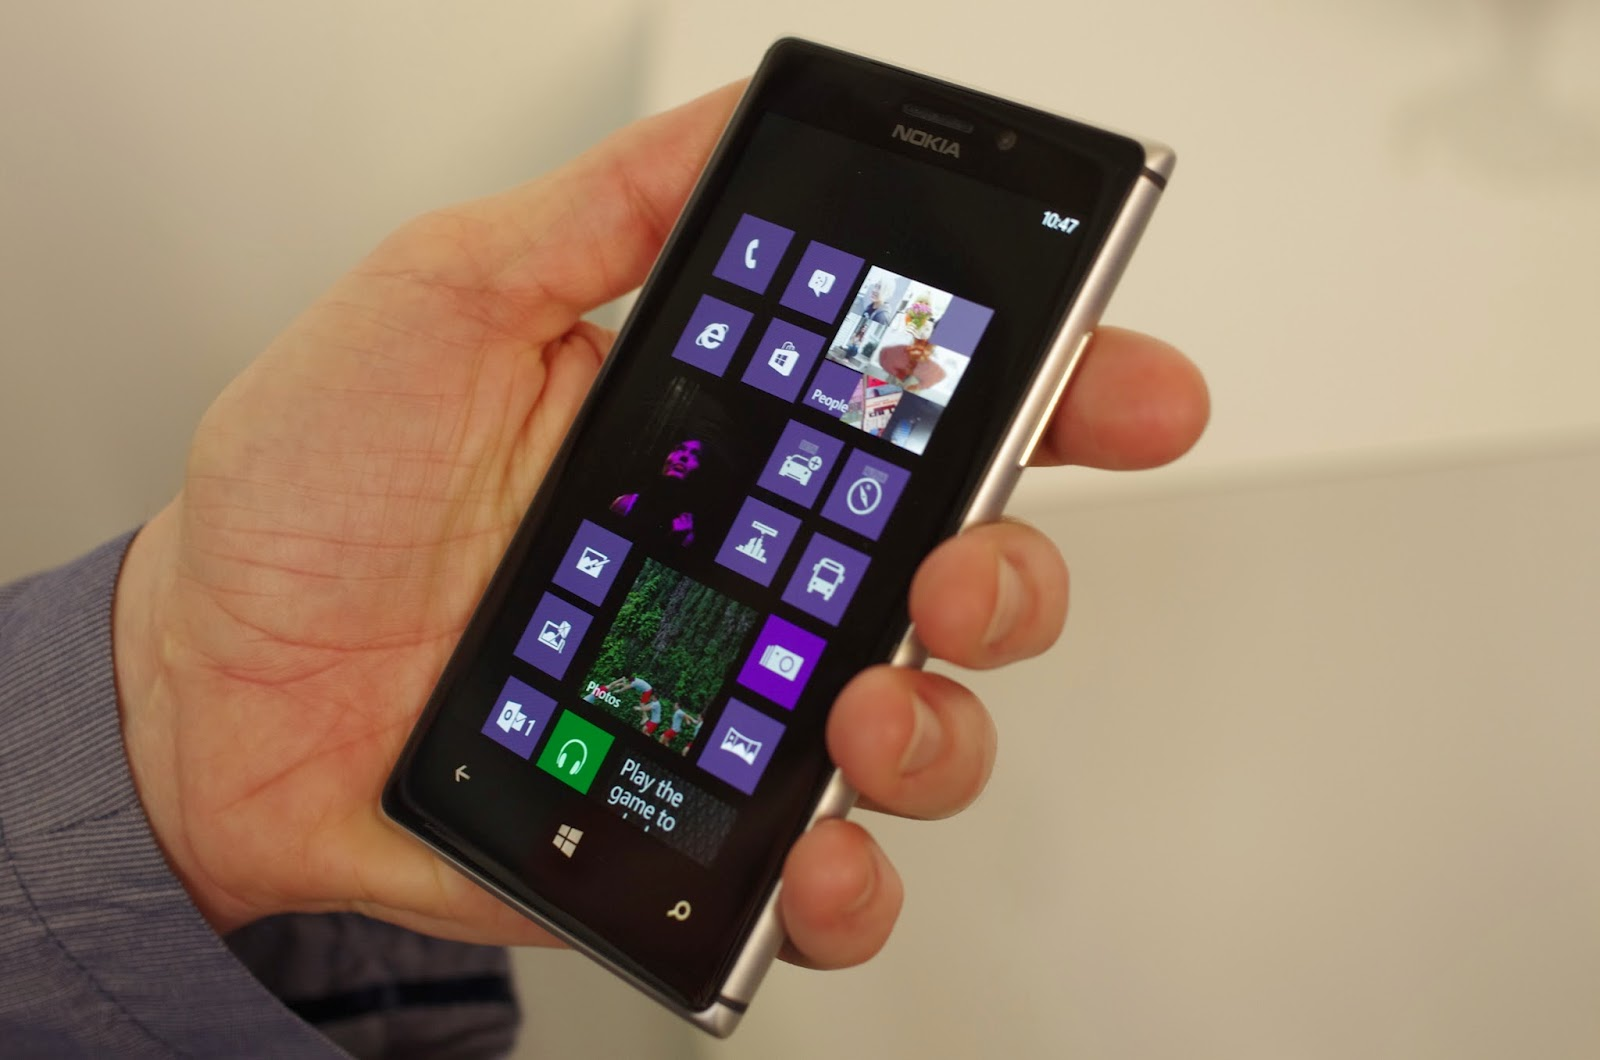 Nokia Lumia 925 Specifications and Review